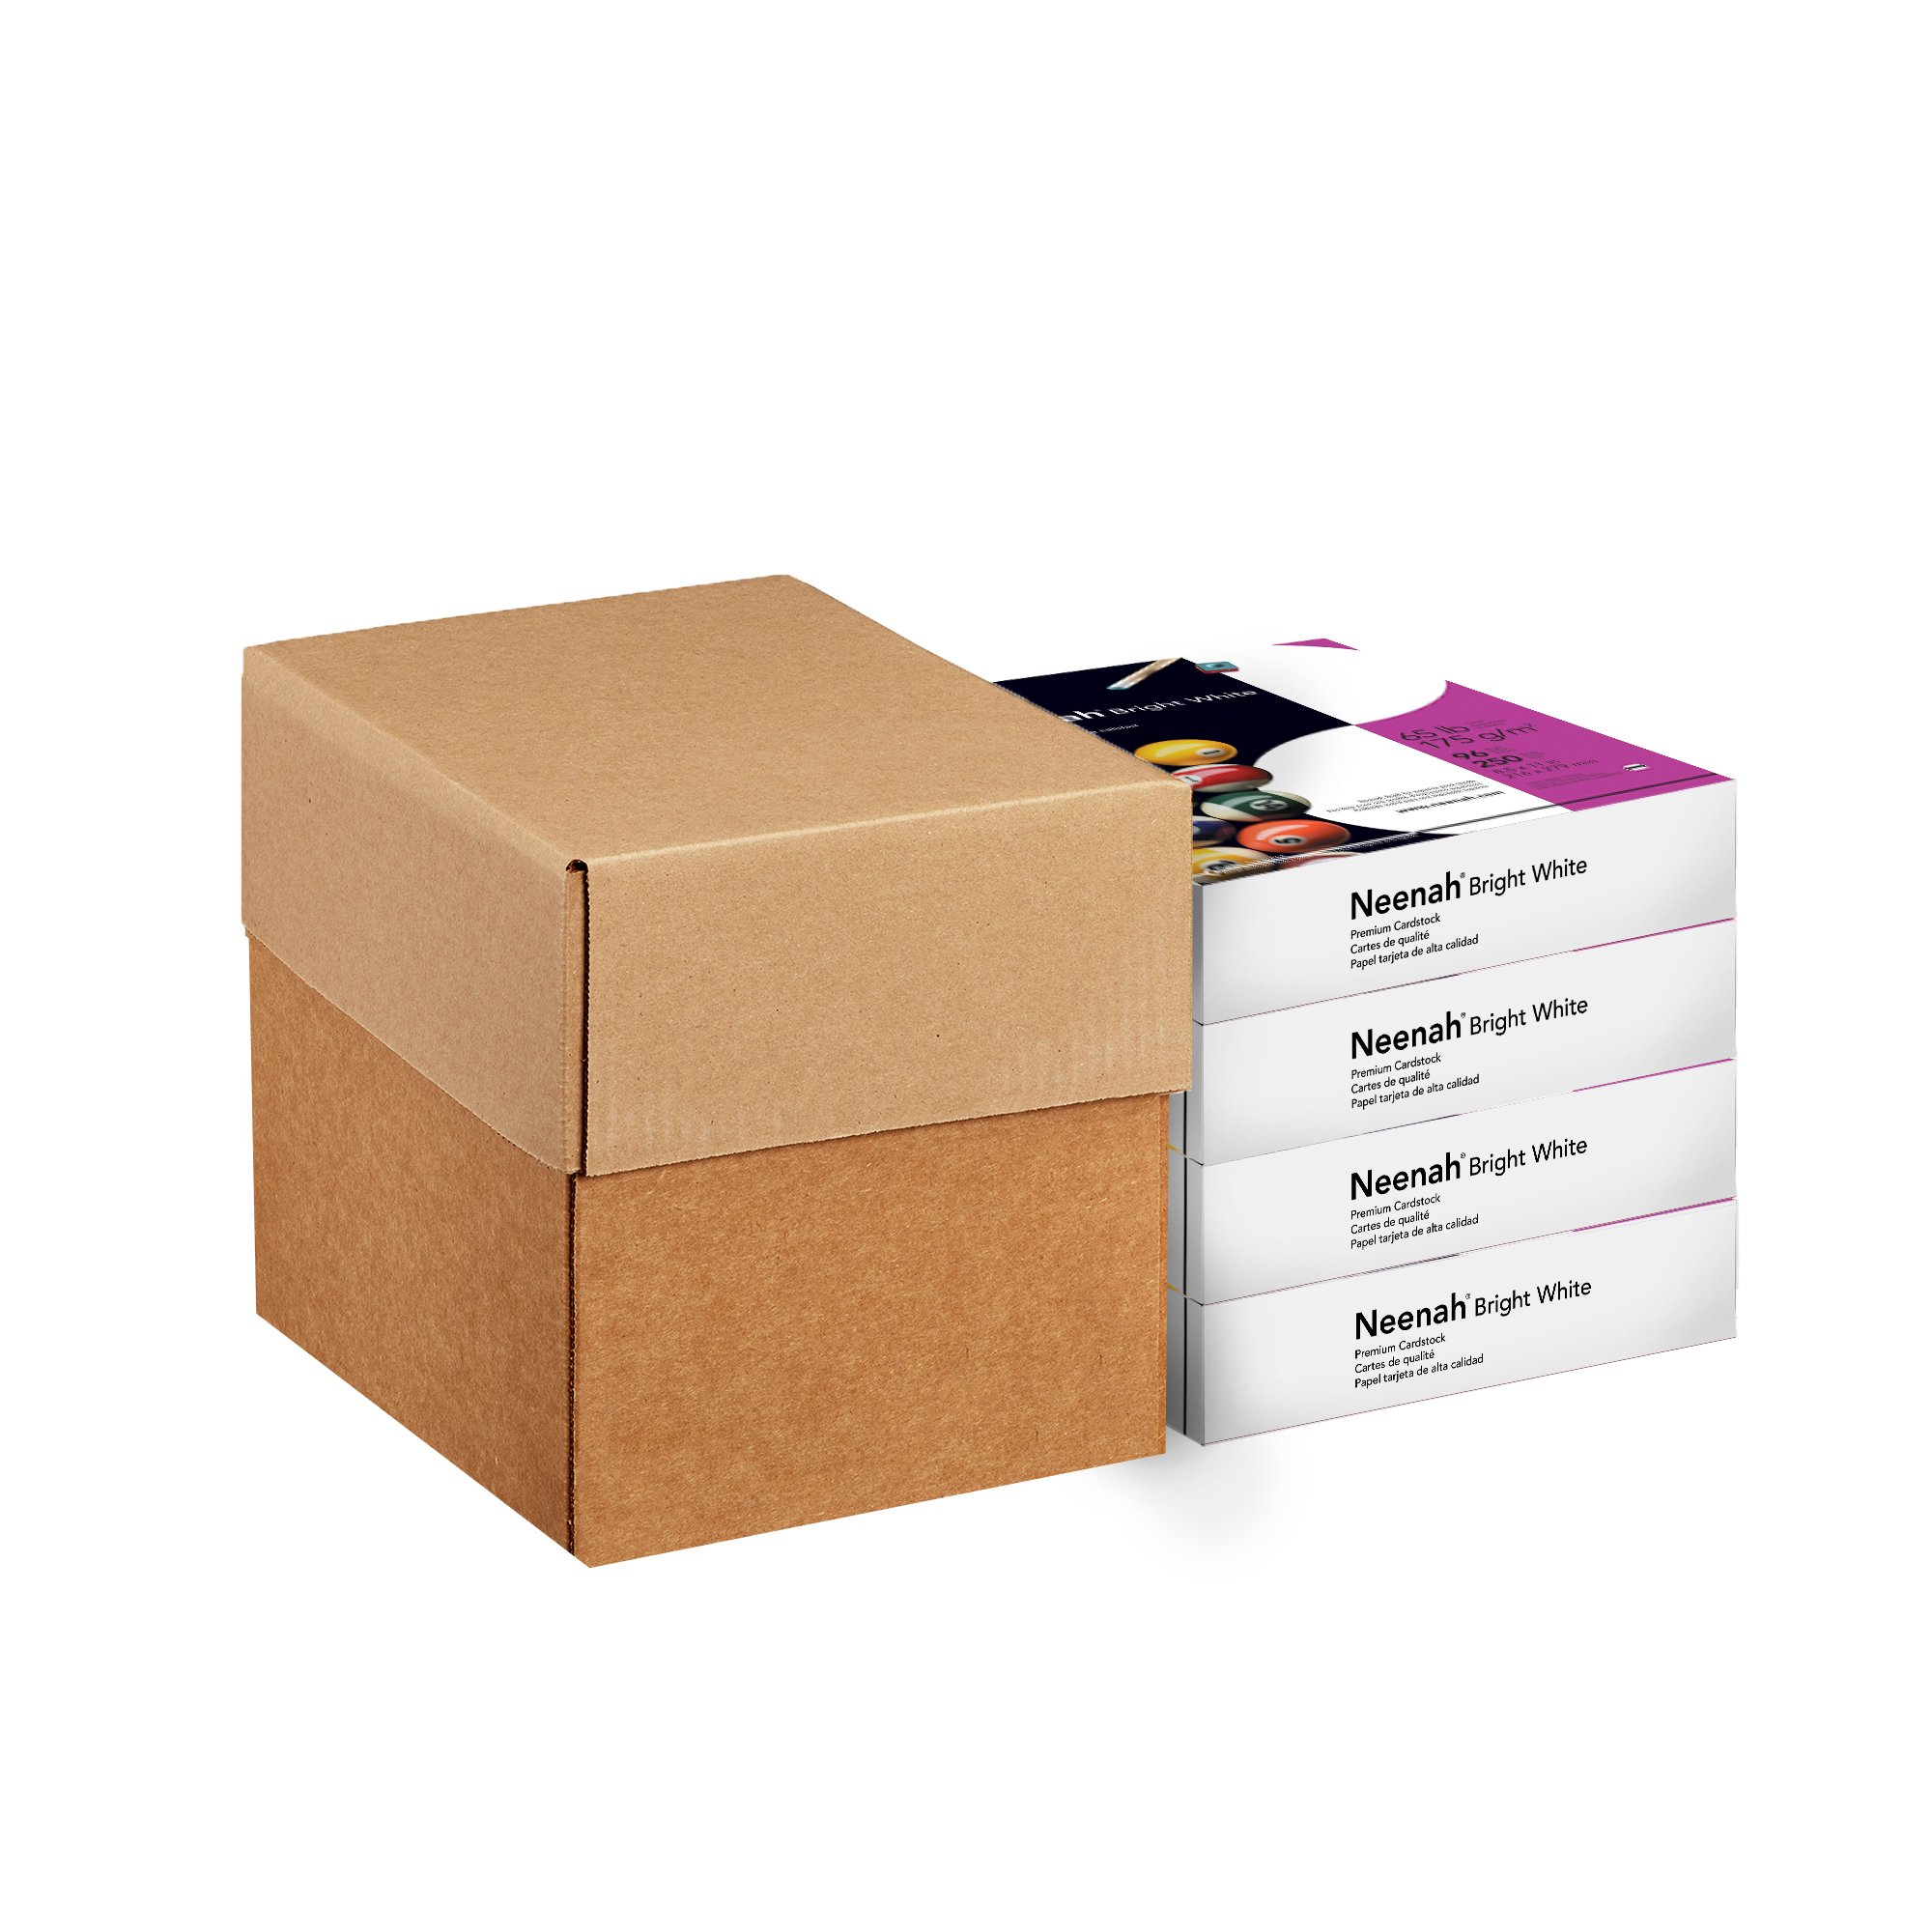 Neenah Paper Bright White Cardstock, 8.5'' x 11'', 65 lb/176 gsm, Bright White, 96 Brightness, 1000 Sheets, 4 Pack (91904) by Neenah